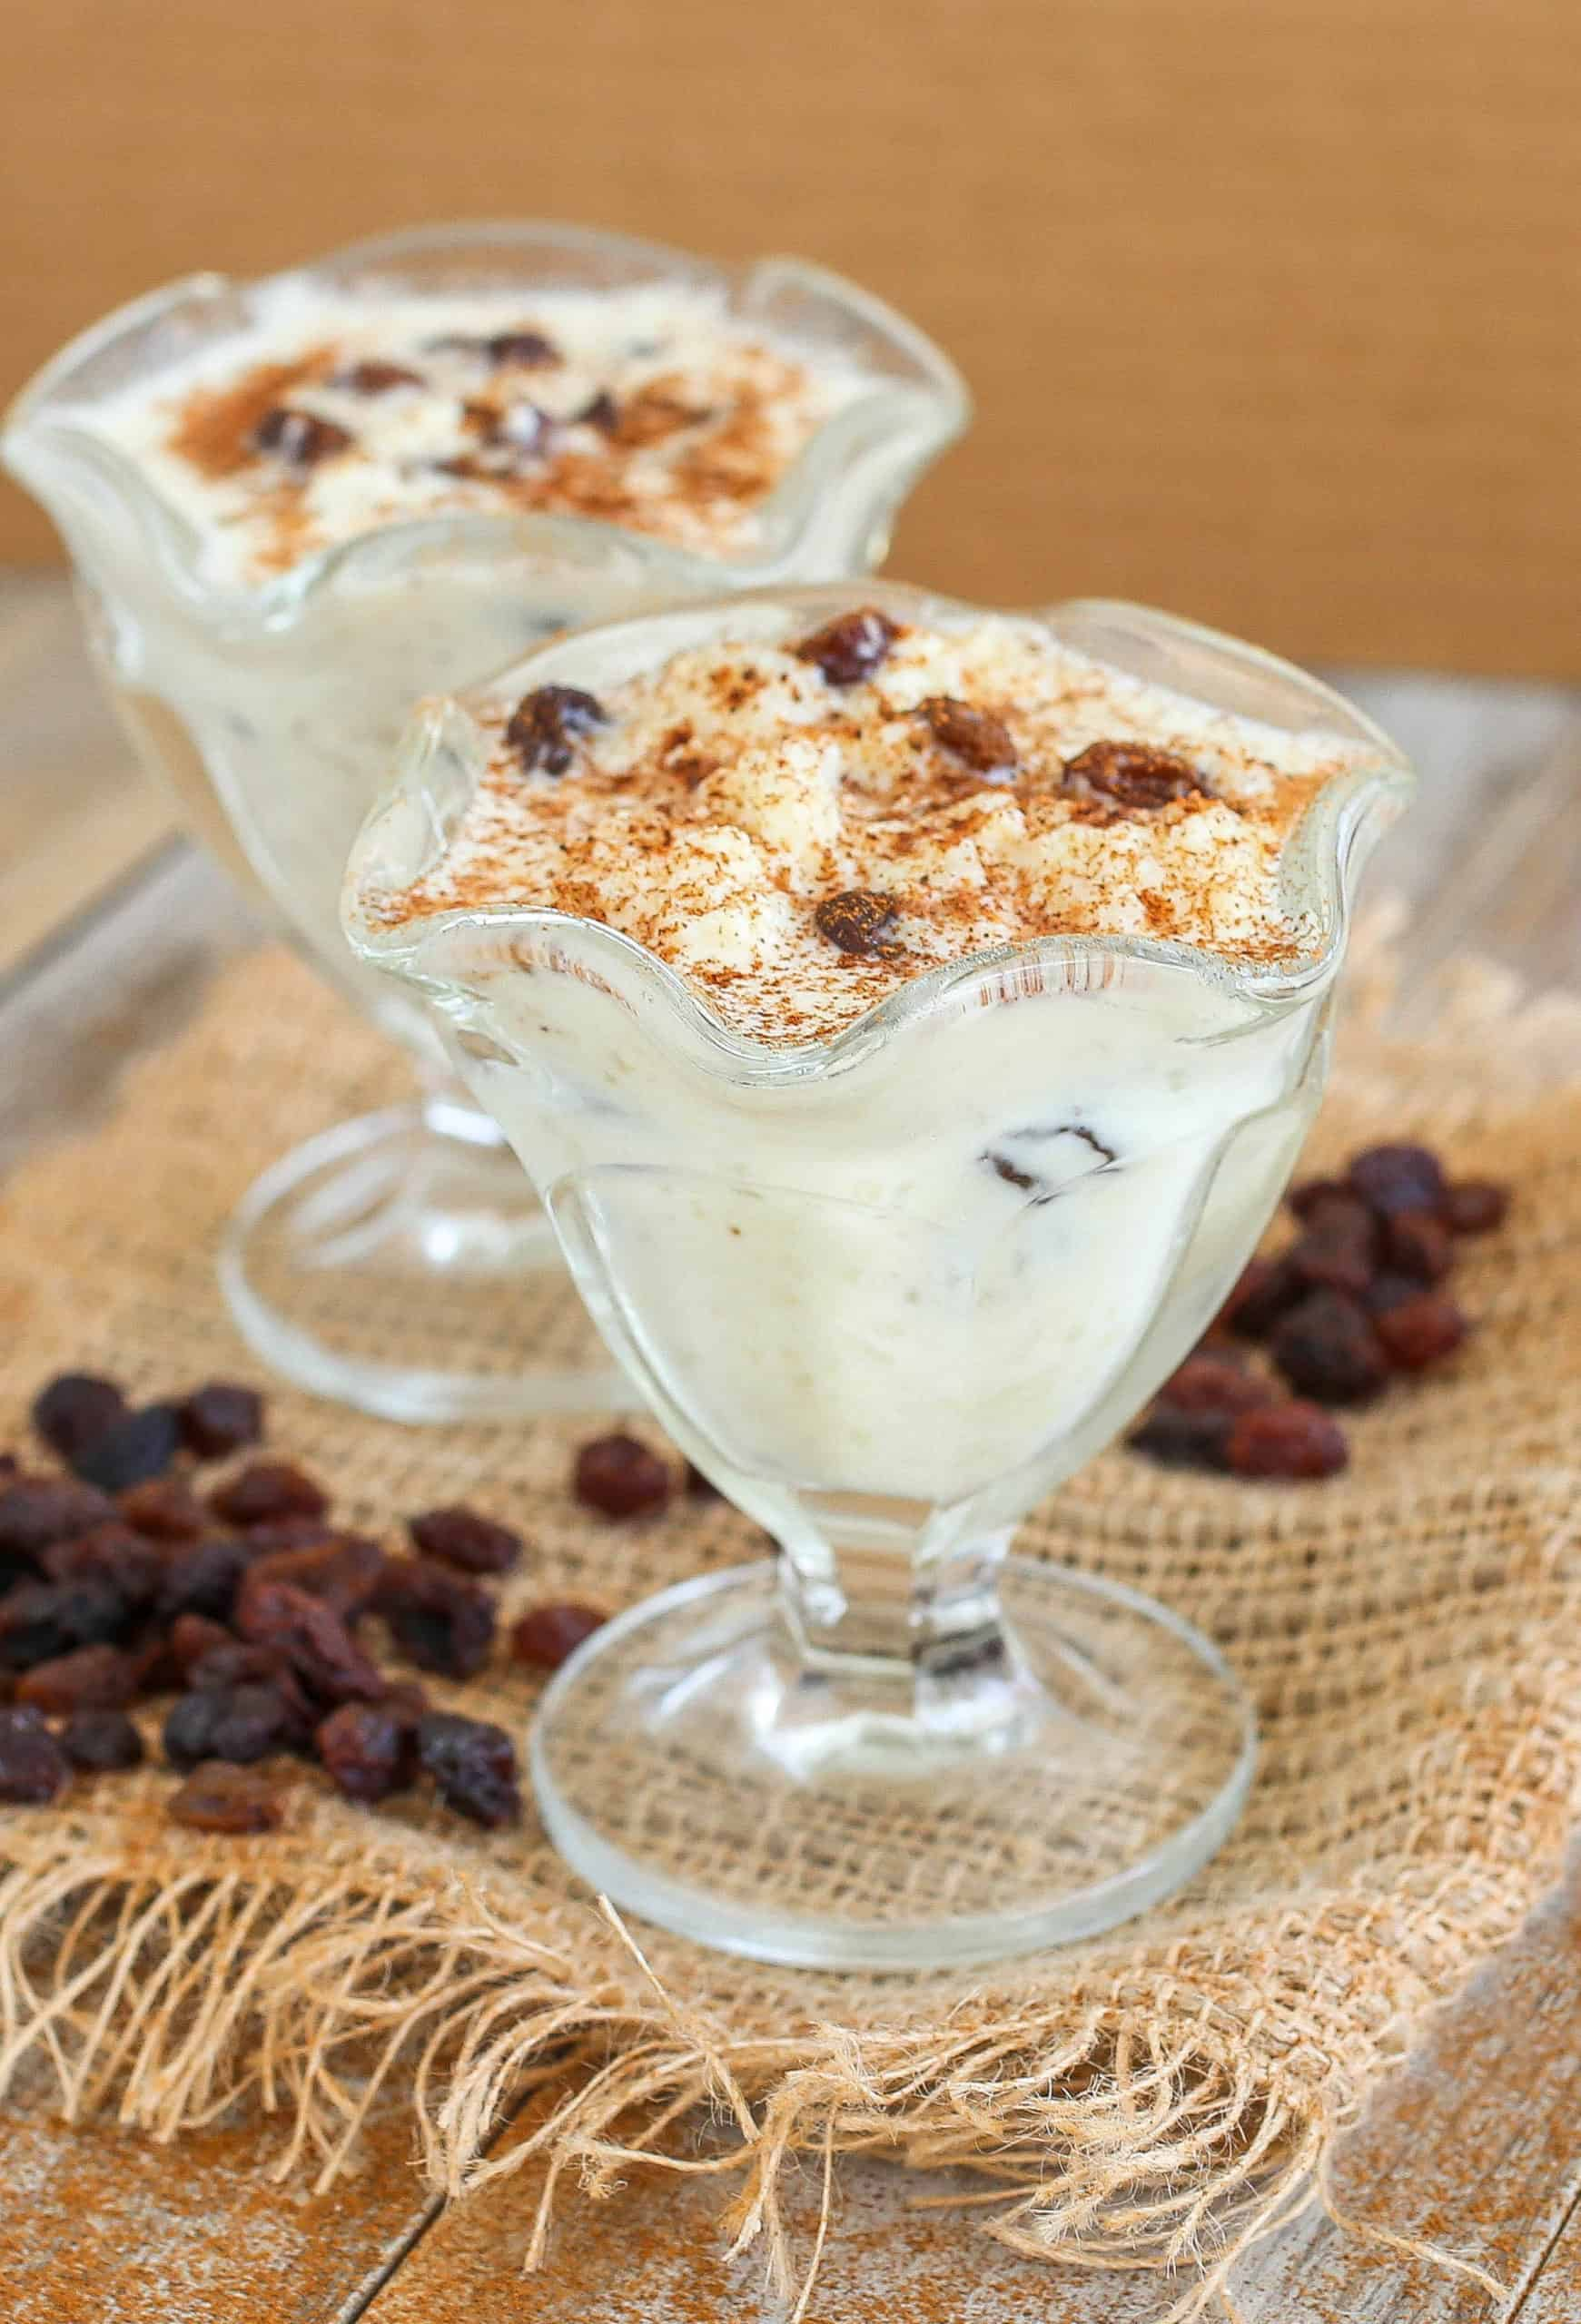 Oven-Baked Rice Pudding - Sprinkle Some Sugar